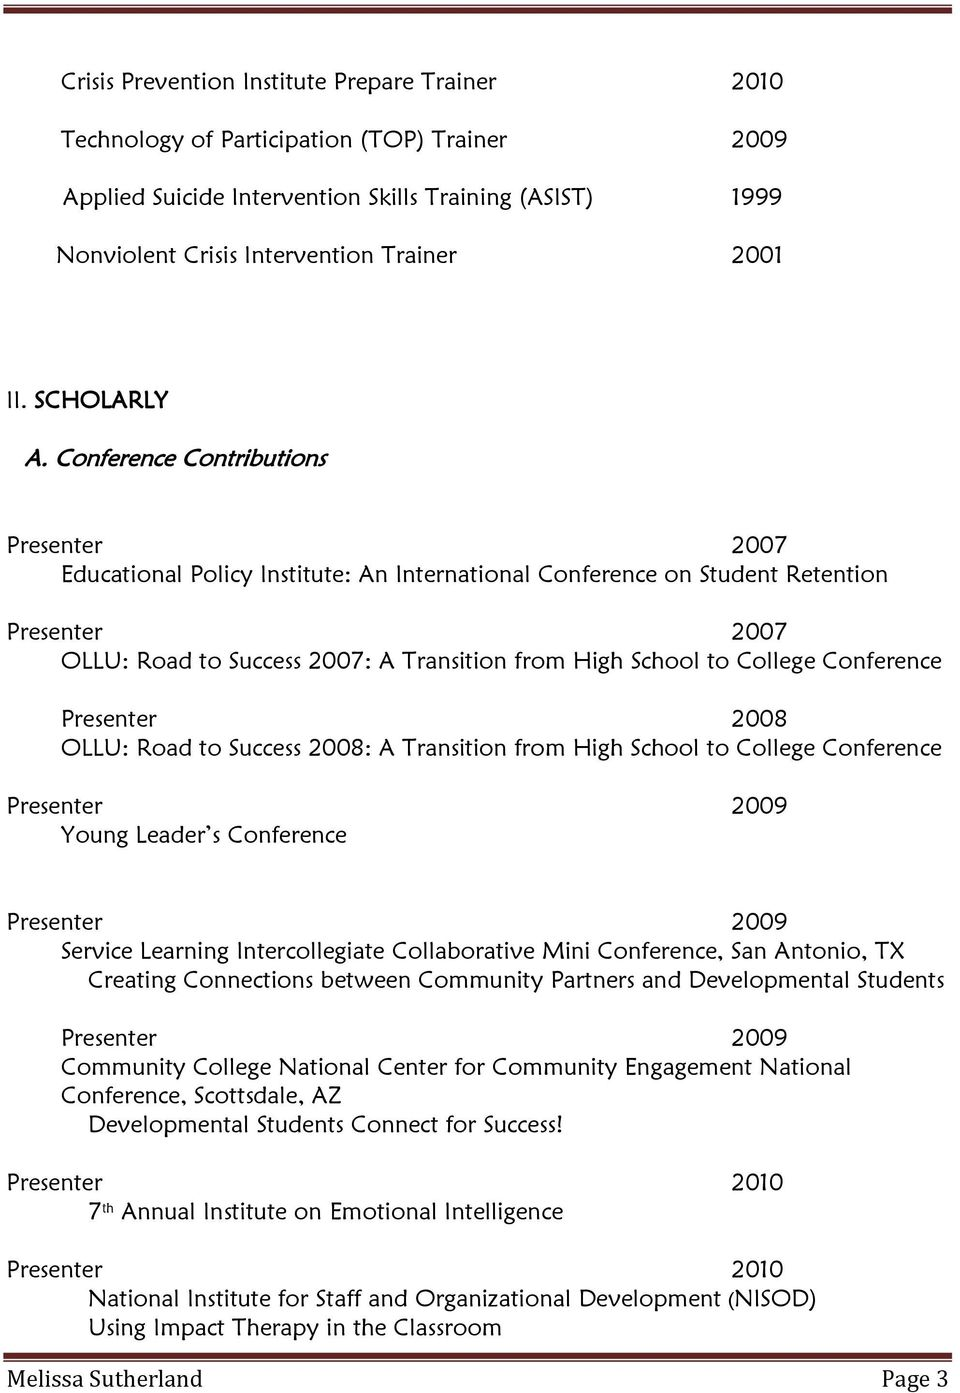 Conference Contributions Presenter 2007 Educational Policy Institute: An International Conference on Student Retention Presenter 2007 OLLU: Road to Success 2007: A Transition from High School to